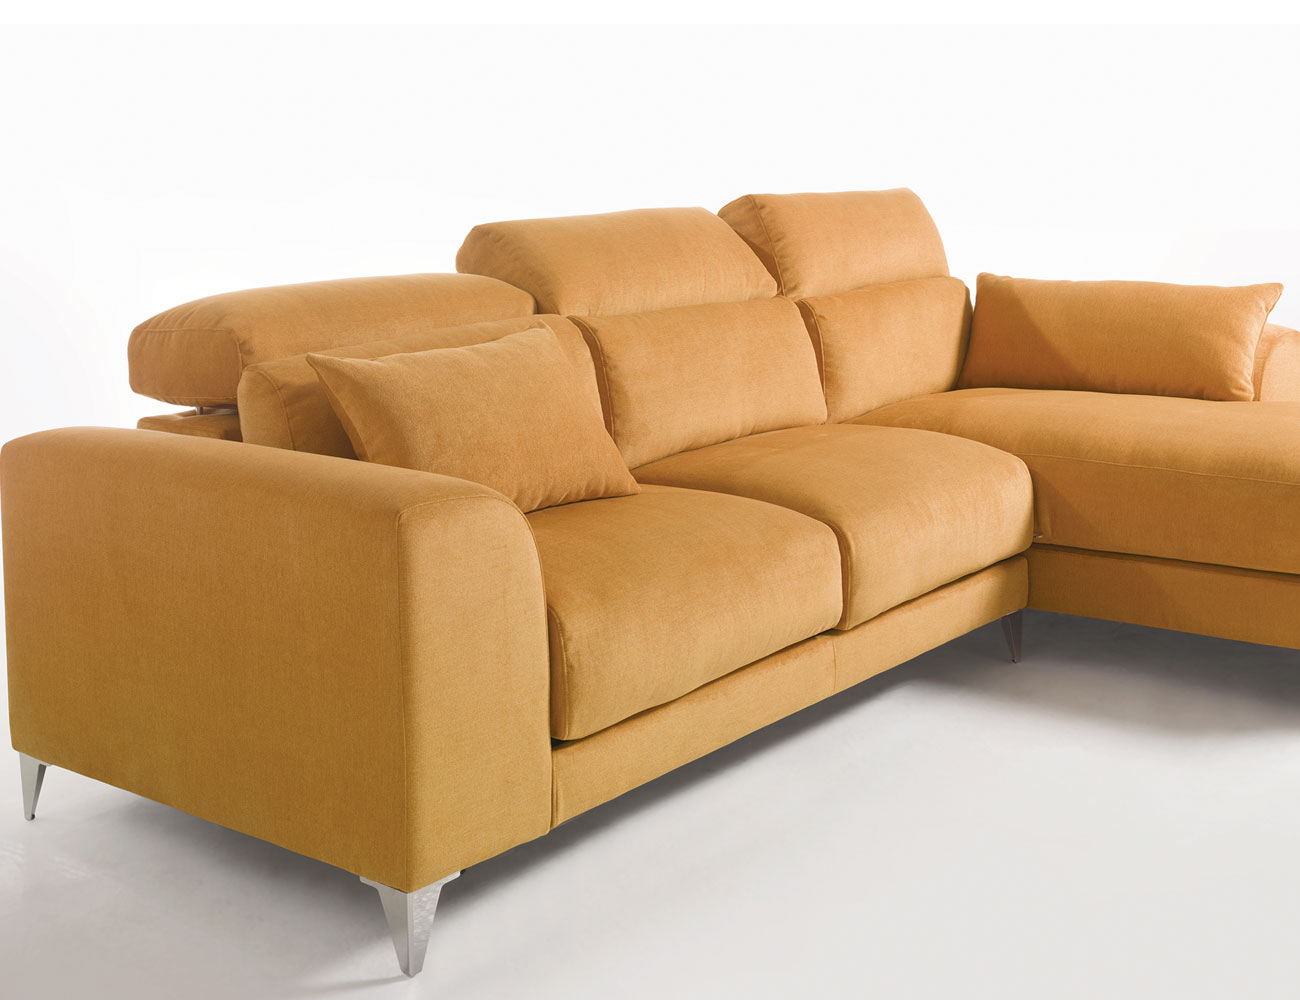 Sofa chaiselongue gran lujo decorativo patas altas amarillo 234